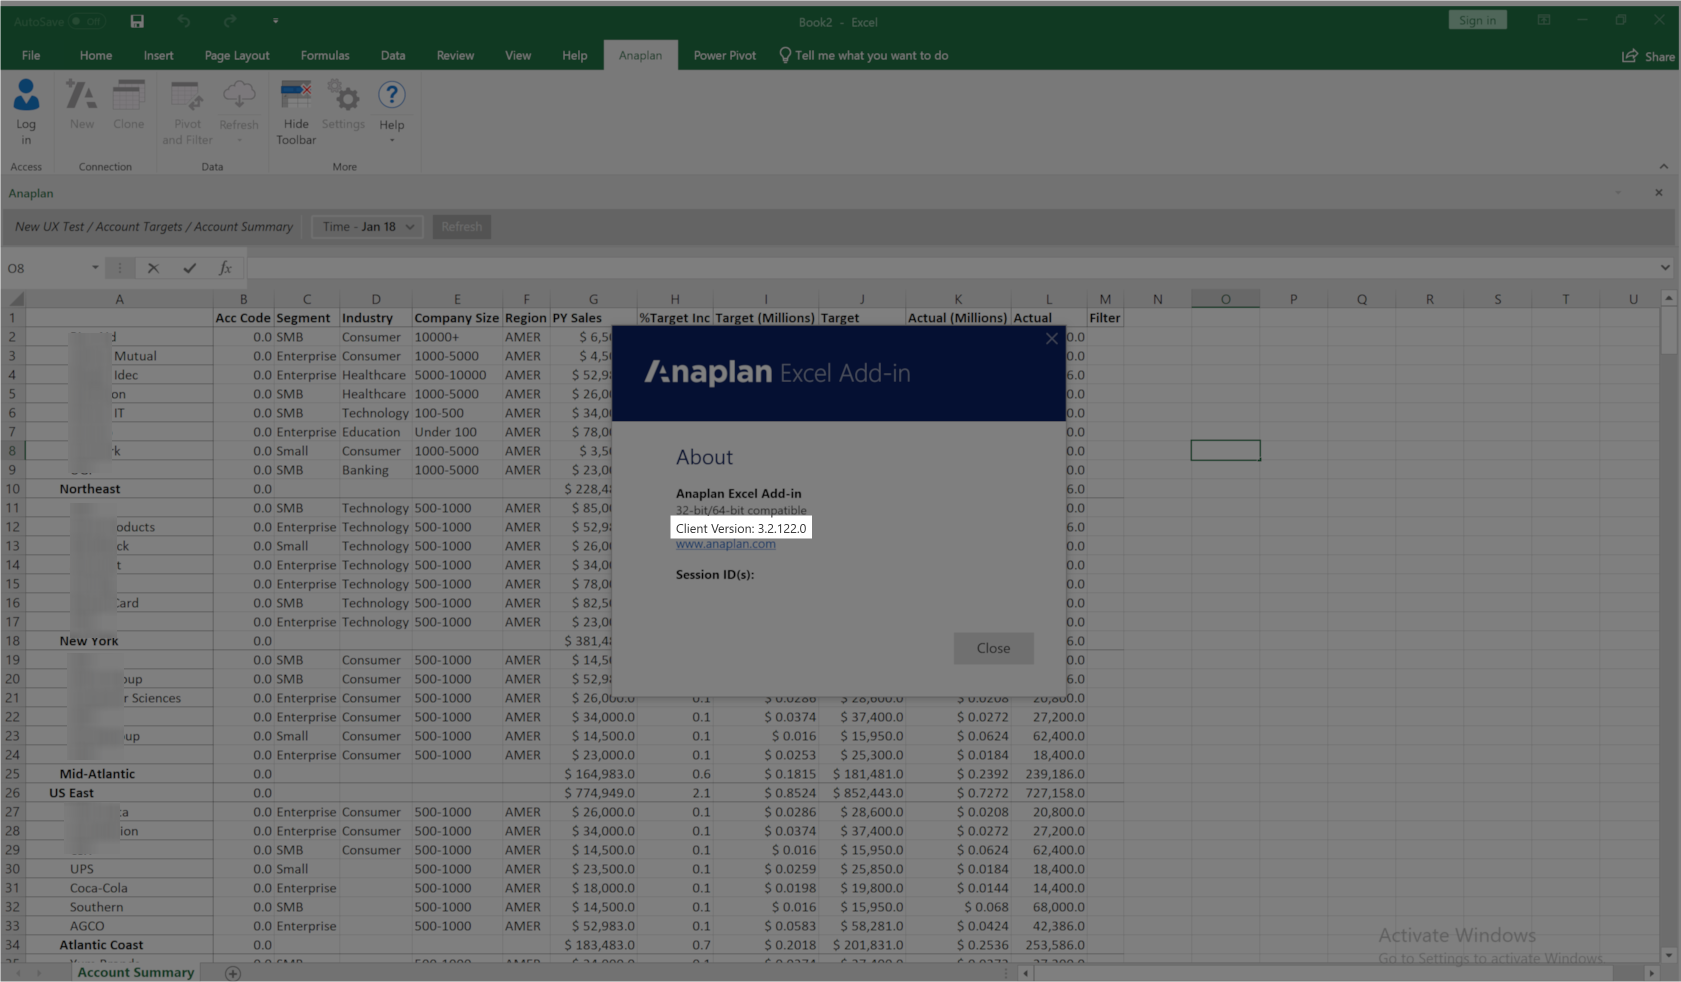 The About box has the client version of Excel Add-in listed. This is highlighted in the image.